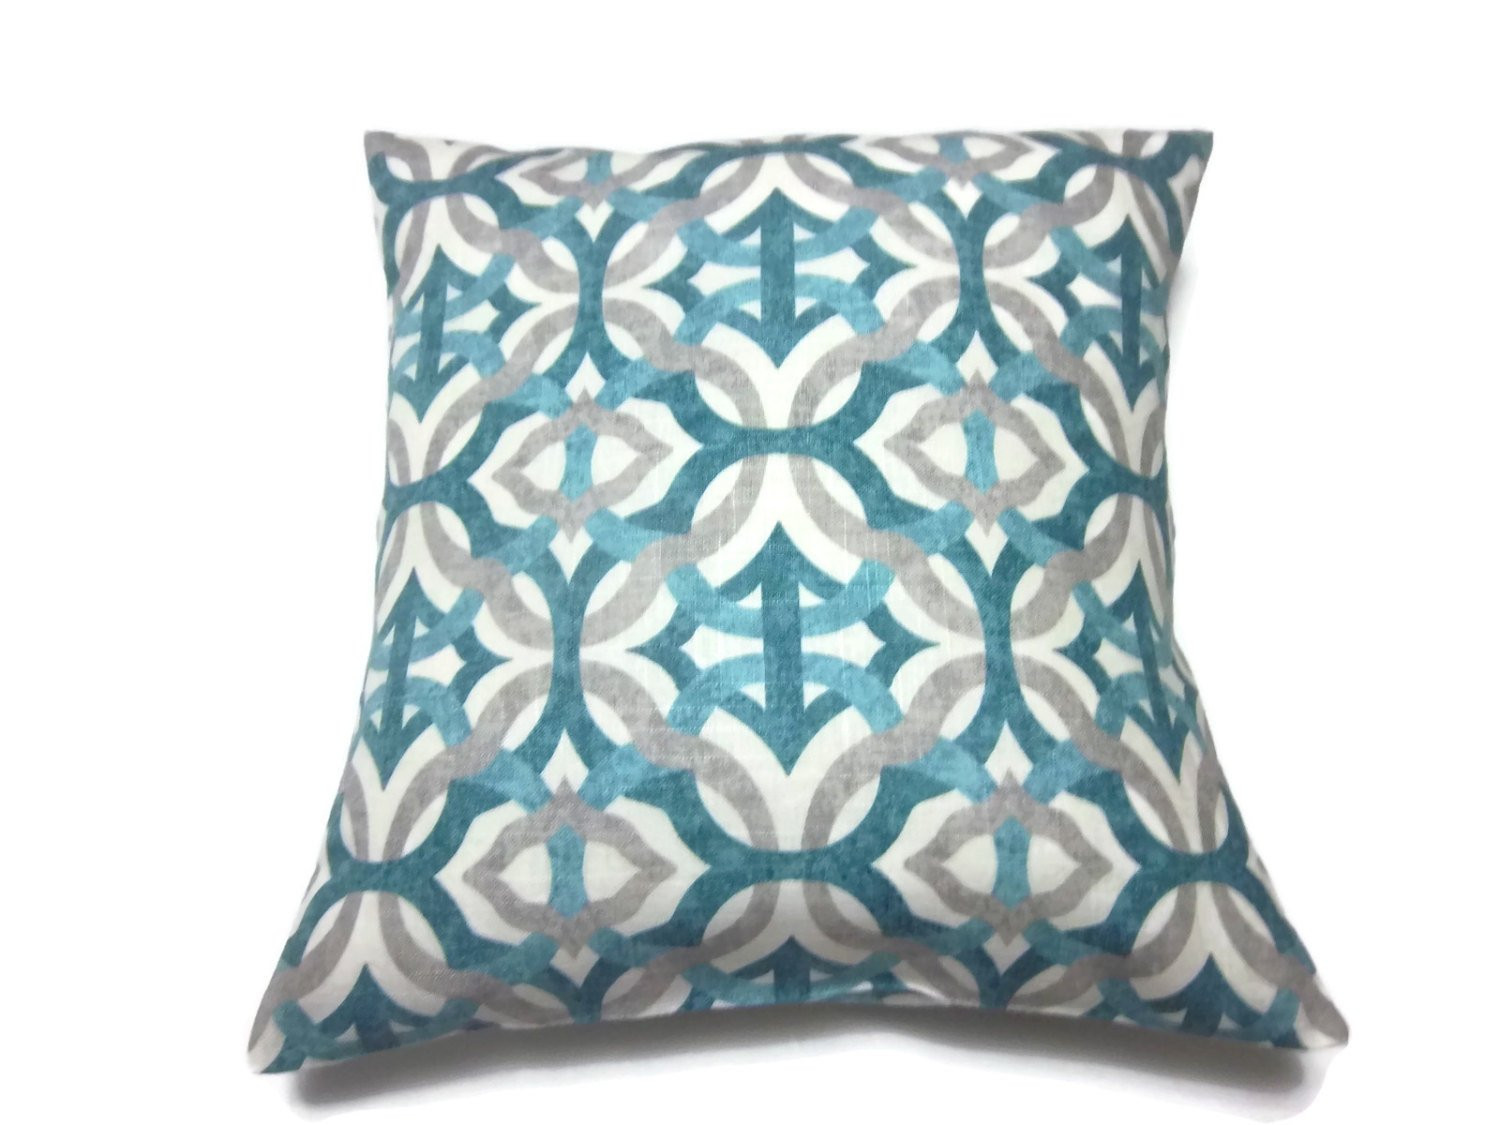 Teal And Gray Decorative Pillows home decor Takcop